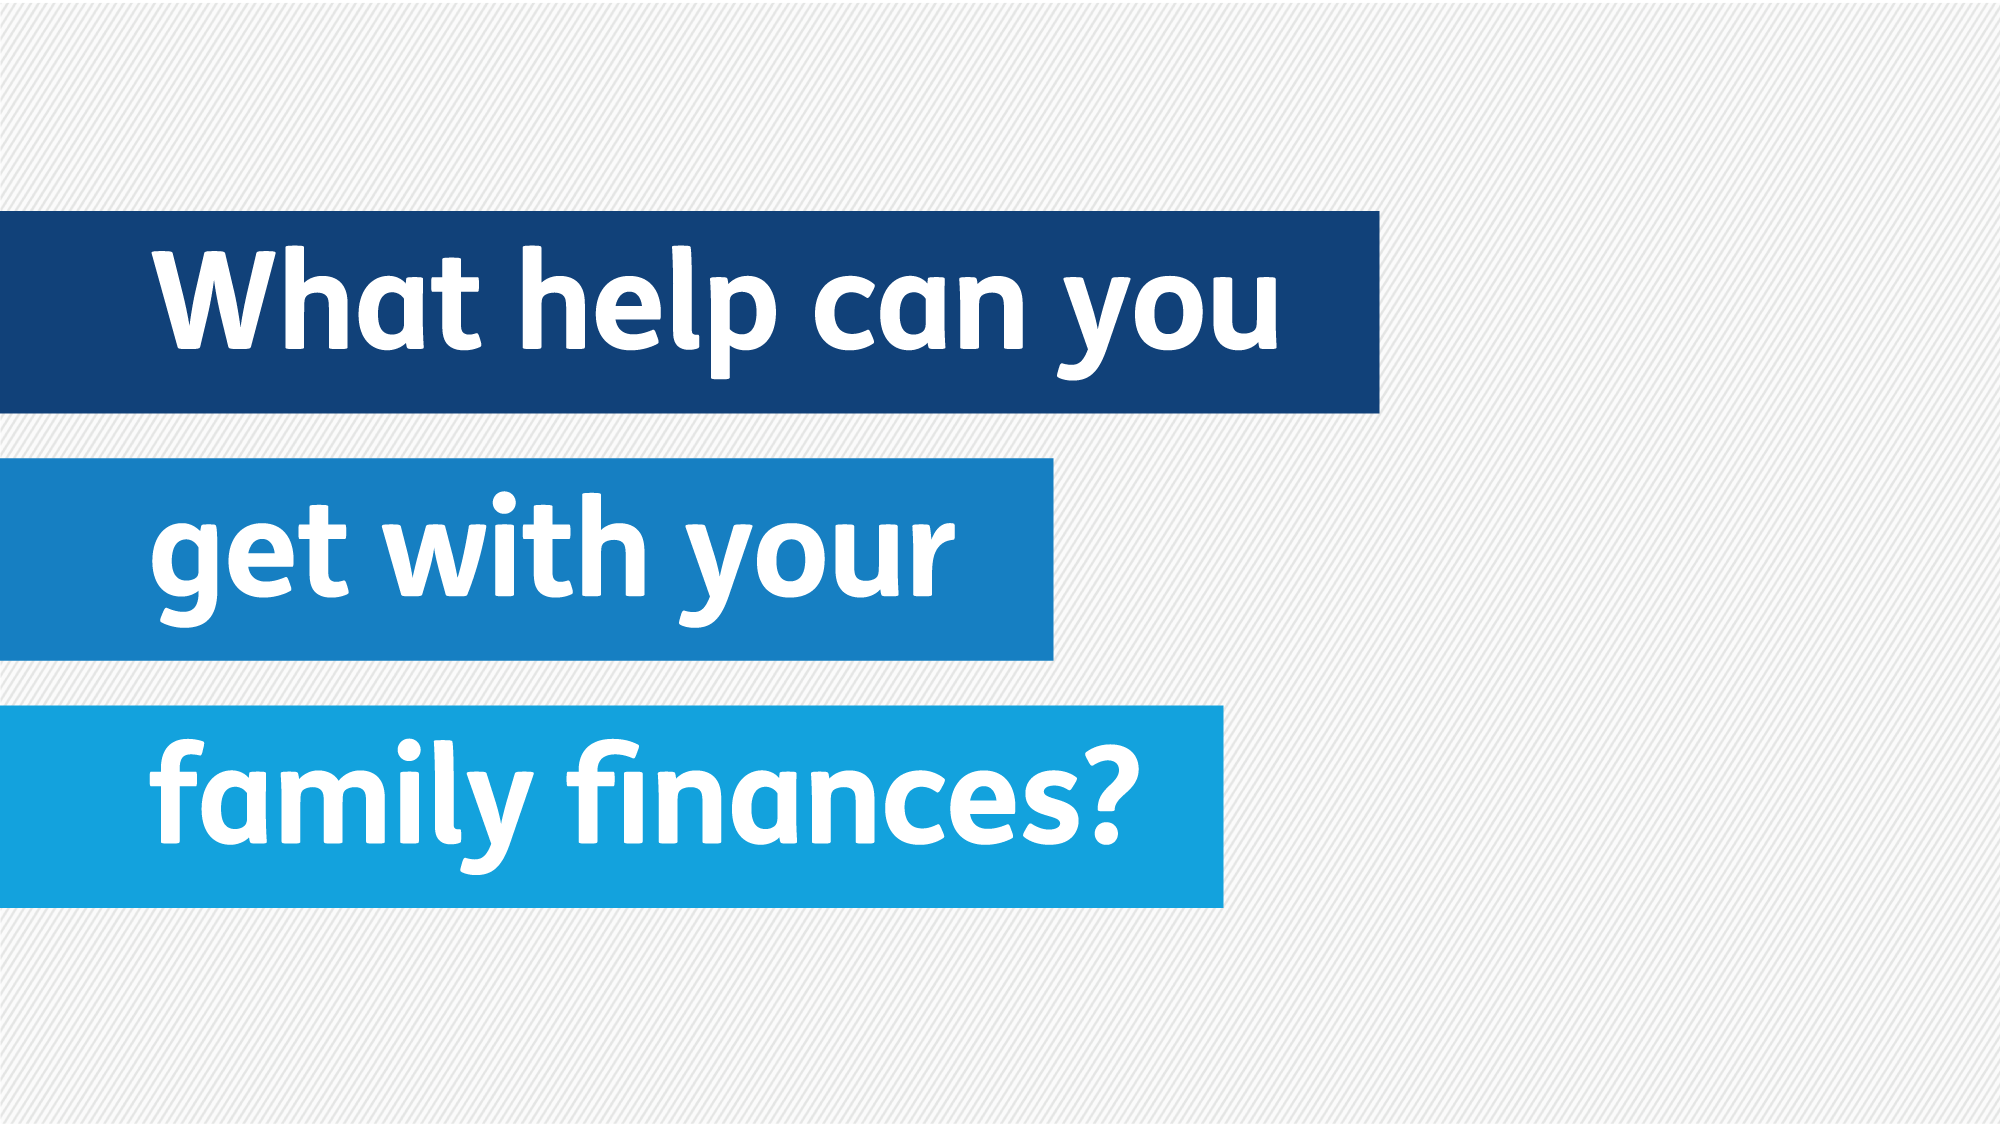 What help can you get with your family finances?